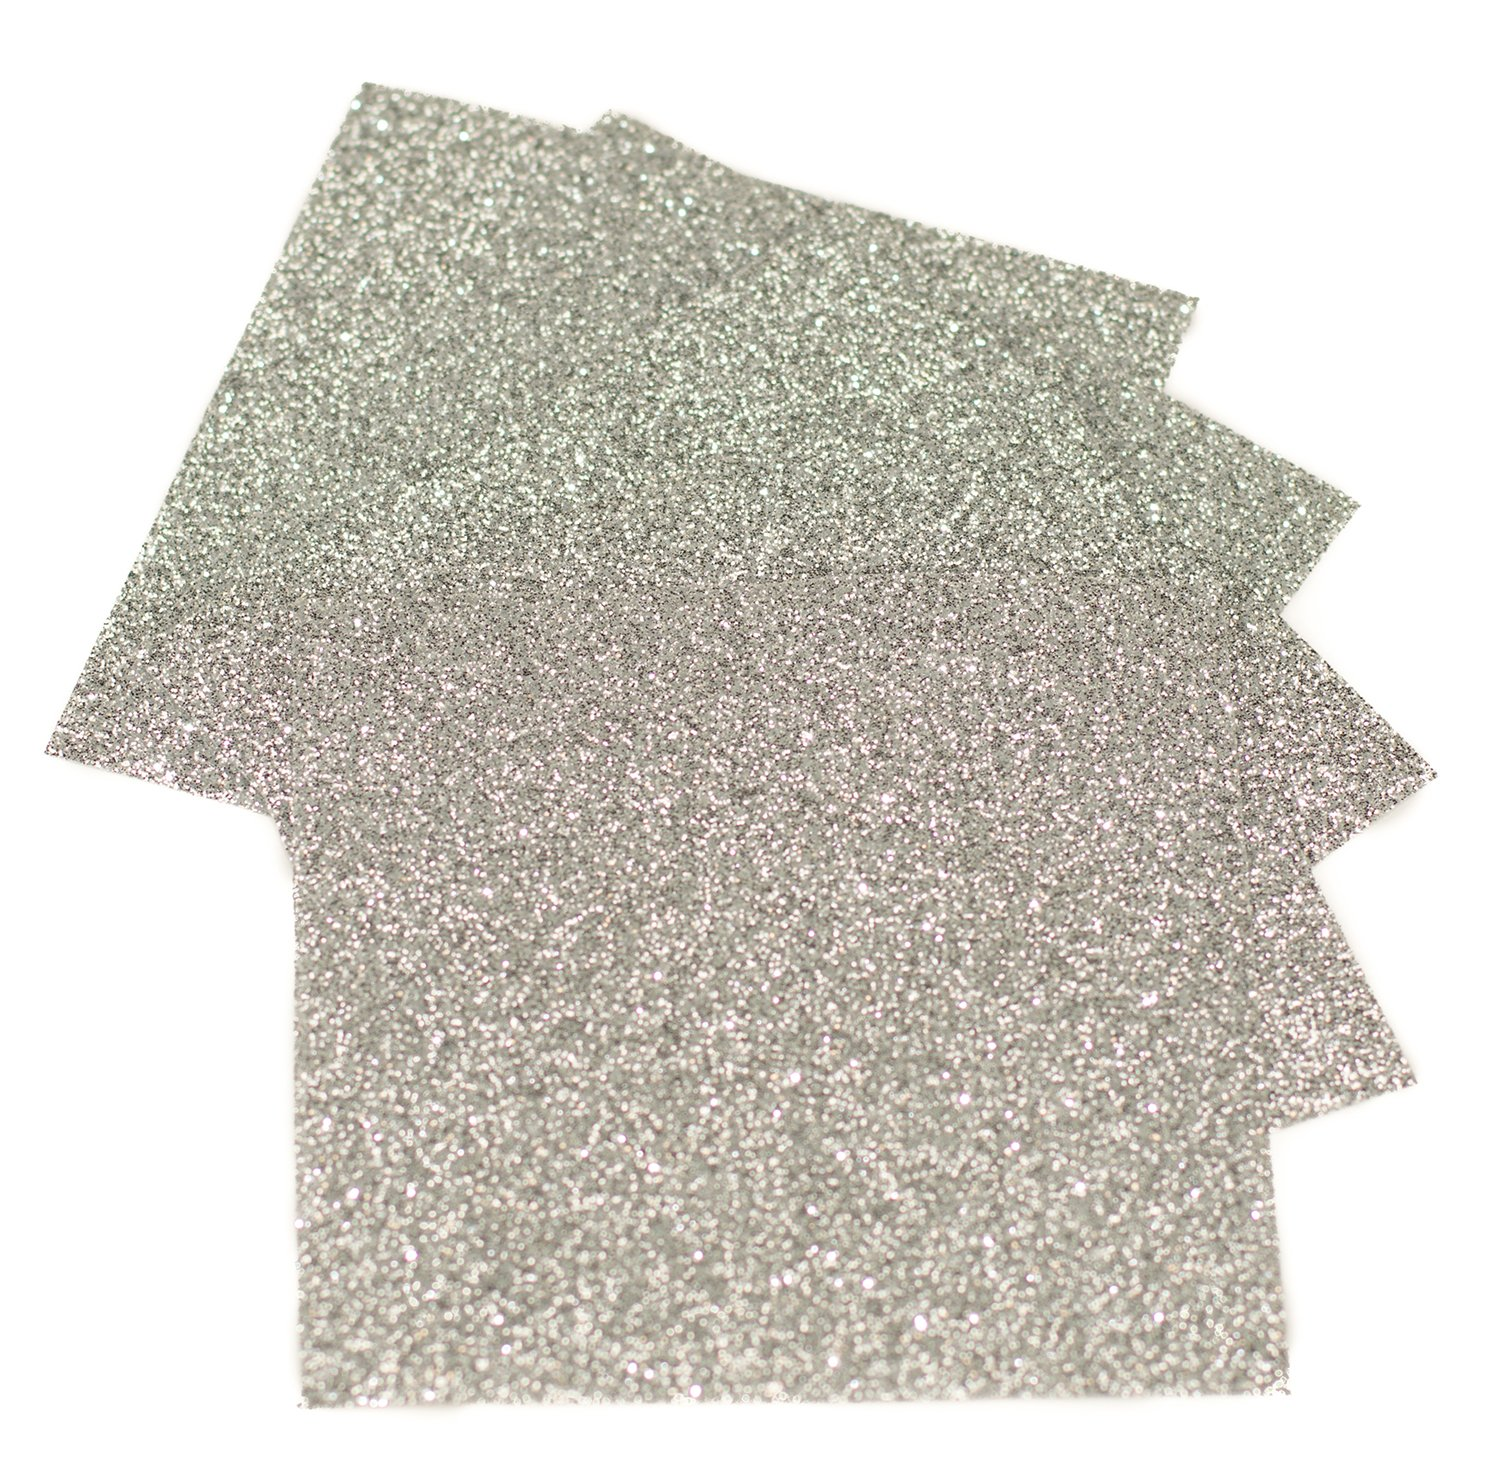 Expressions Vinyl - Silver - 9in. x 12in. 5-pack Siser Glitter Iron-on Heat Transfer Vinyl Sheets by Expressions Vinyl